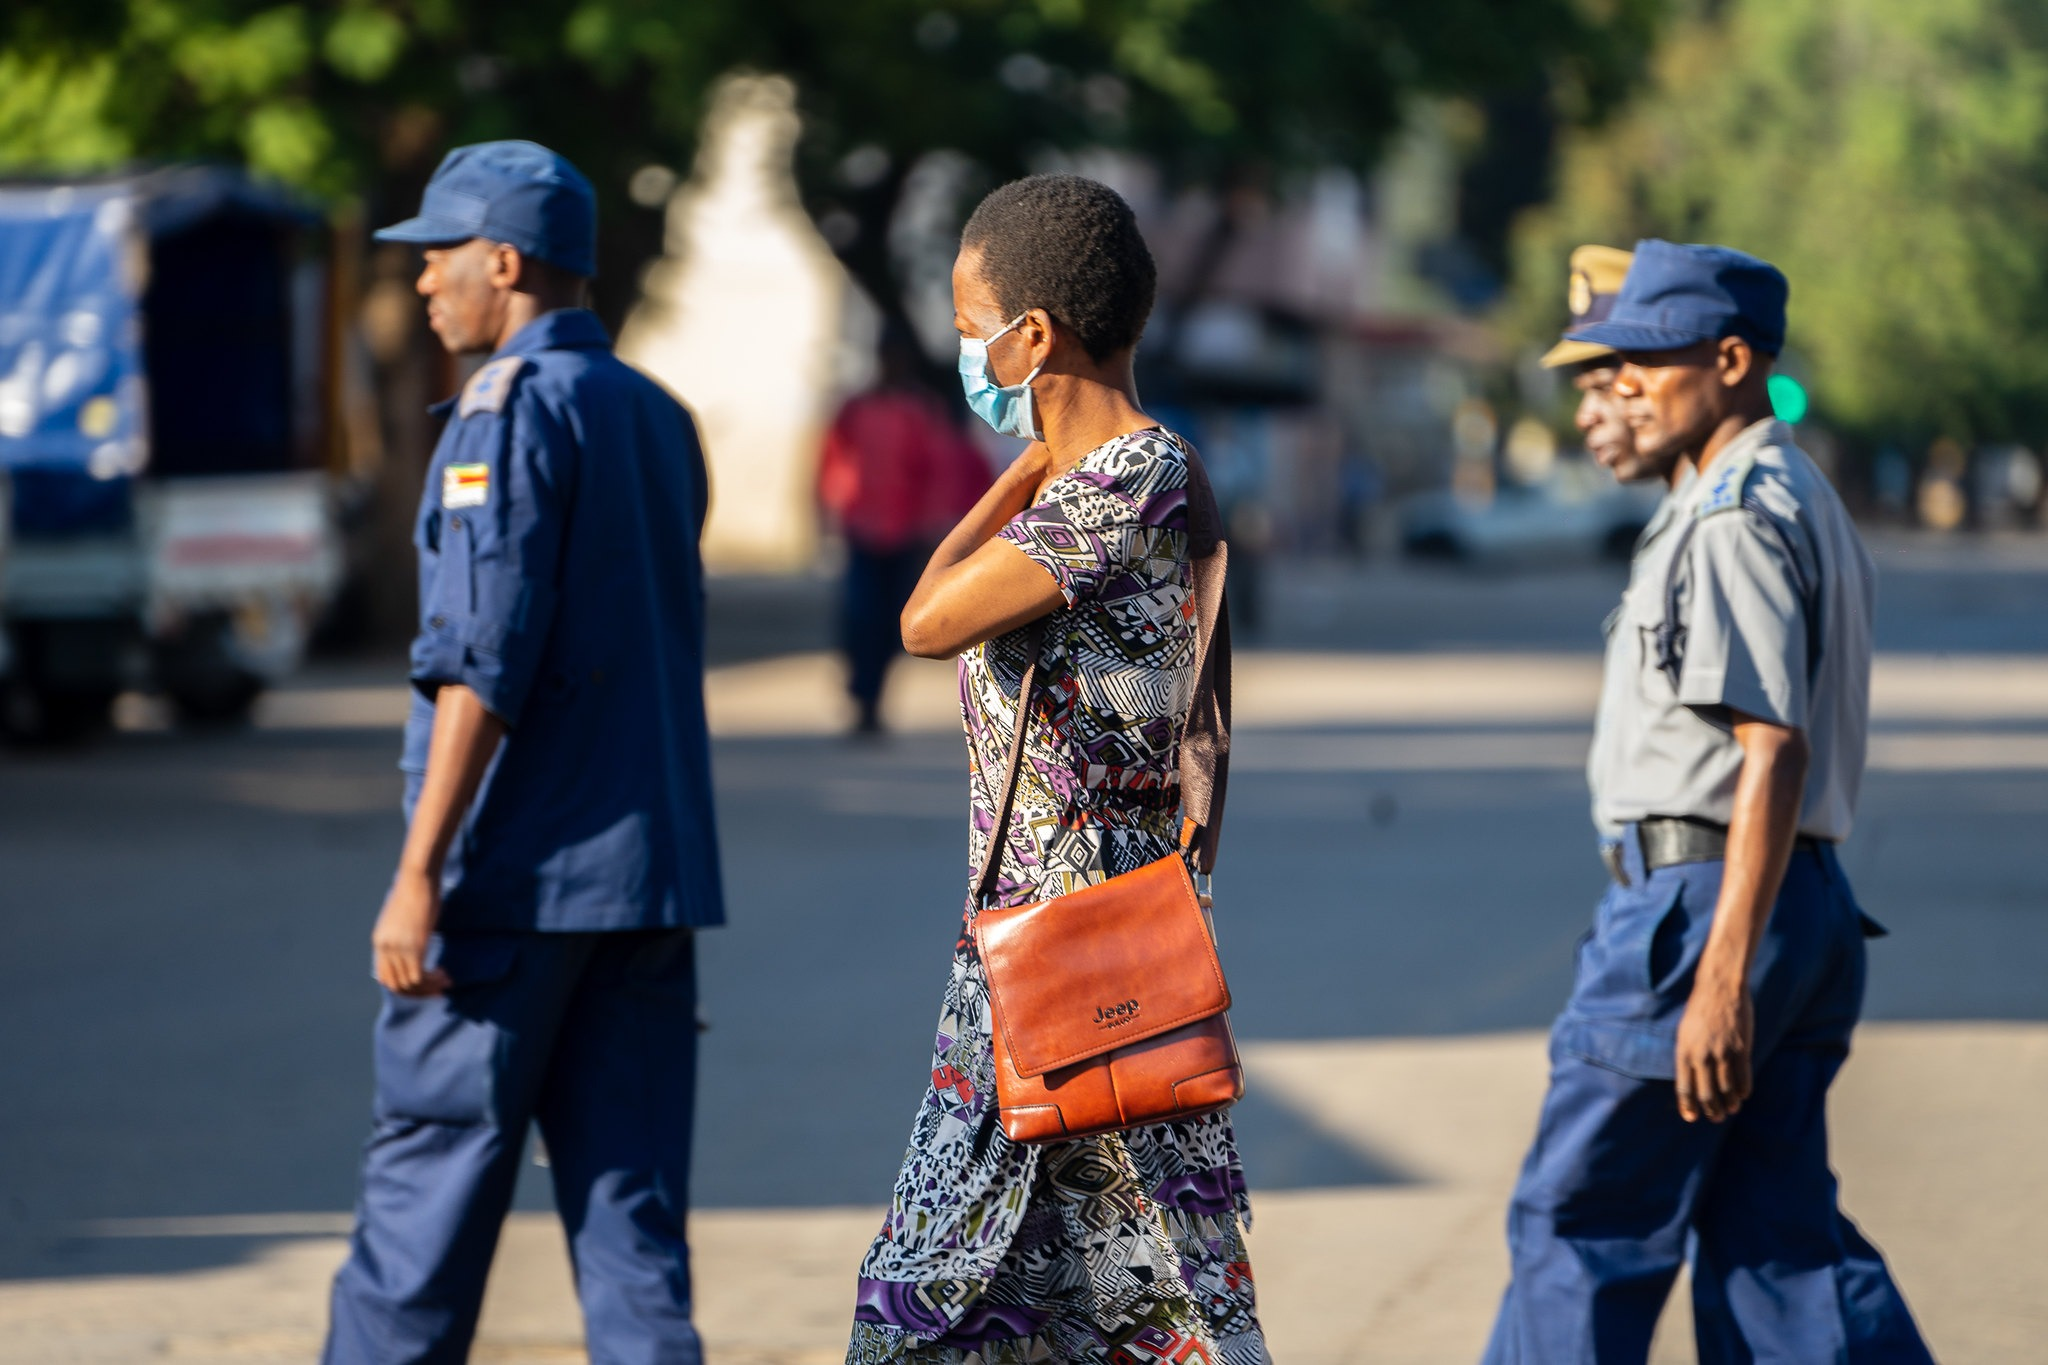 Harare, Zimbabwe. A woman wearing a COVID-19 protective mask walks past a group of police officers on patrol in Bulawayo CBD, 1 April 2020. Photo credit: KB Mpofu / ILO (CC BY-NC-ND 2.0)